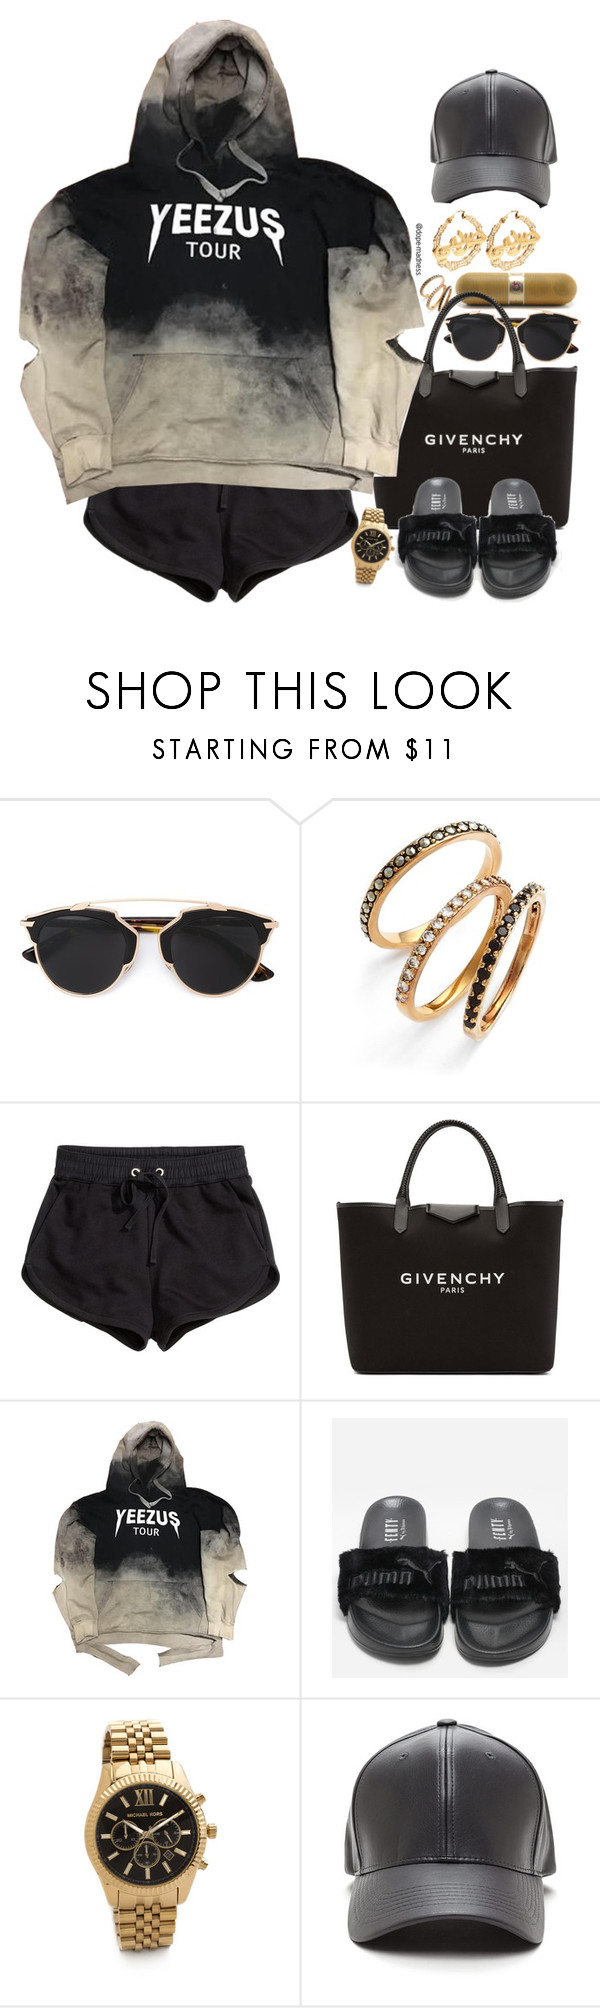 """Yeezus Tour"" by dope-madness ❤ liked on Polyvore featuring Beats by Dr. Dre, Christian Dior, Judith Jack, H&M, Givenchy, Michael Kors and Jeremy Scott"